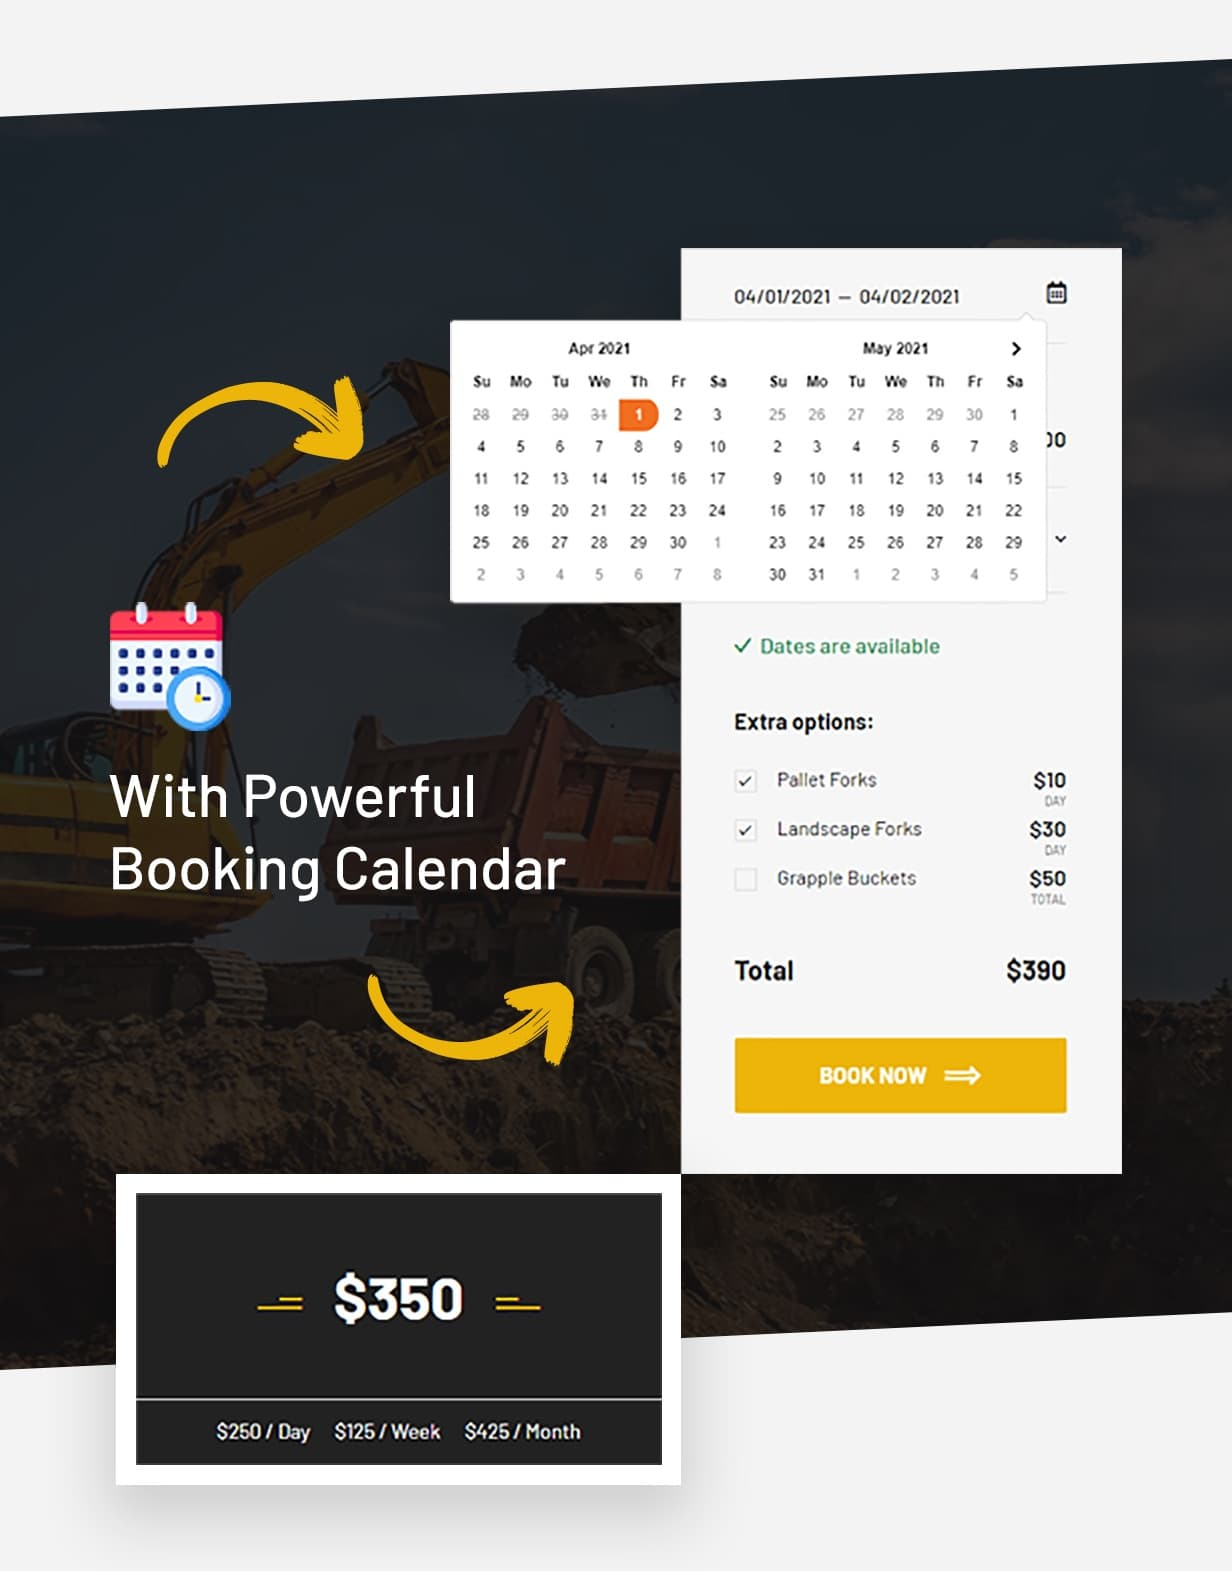 Antek - Powerful Booking Calendar